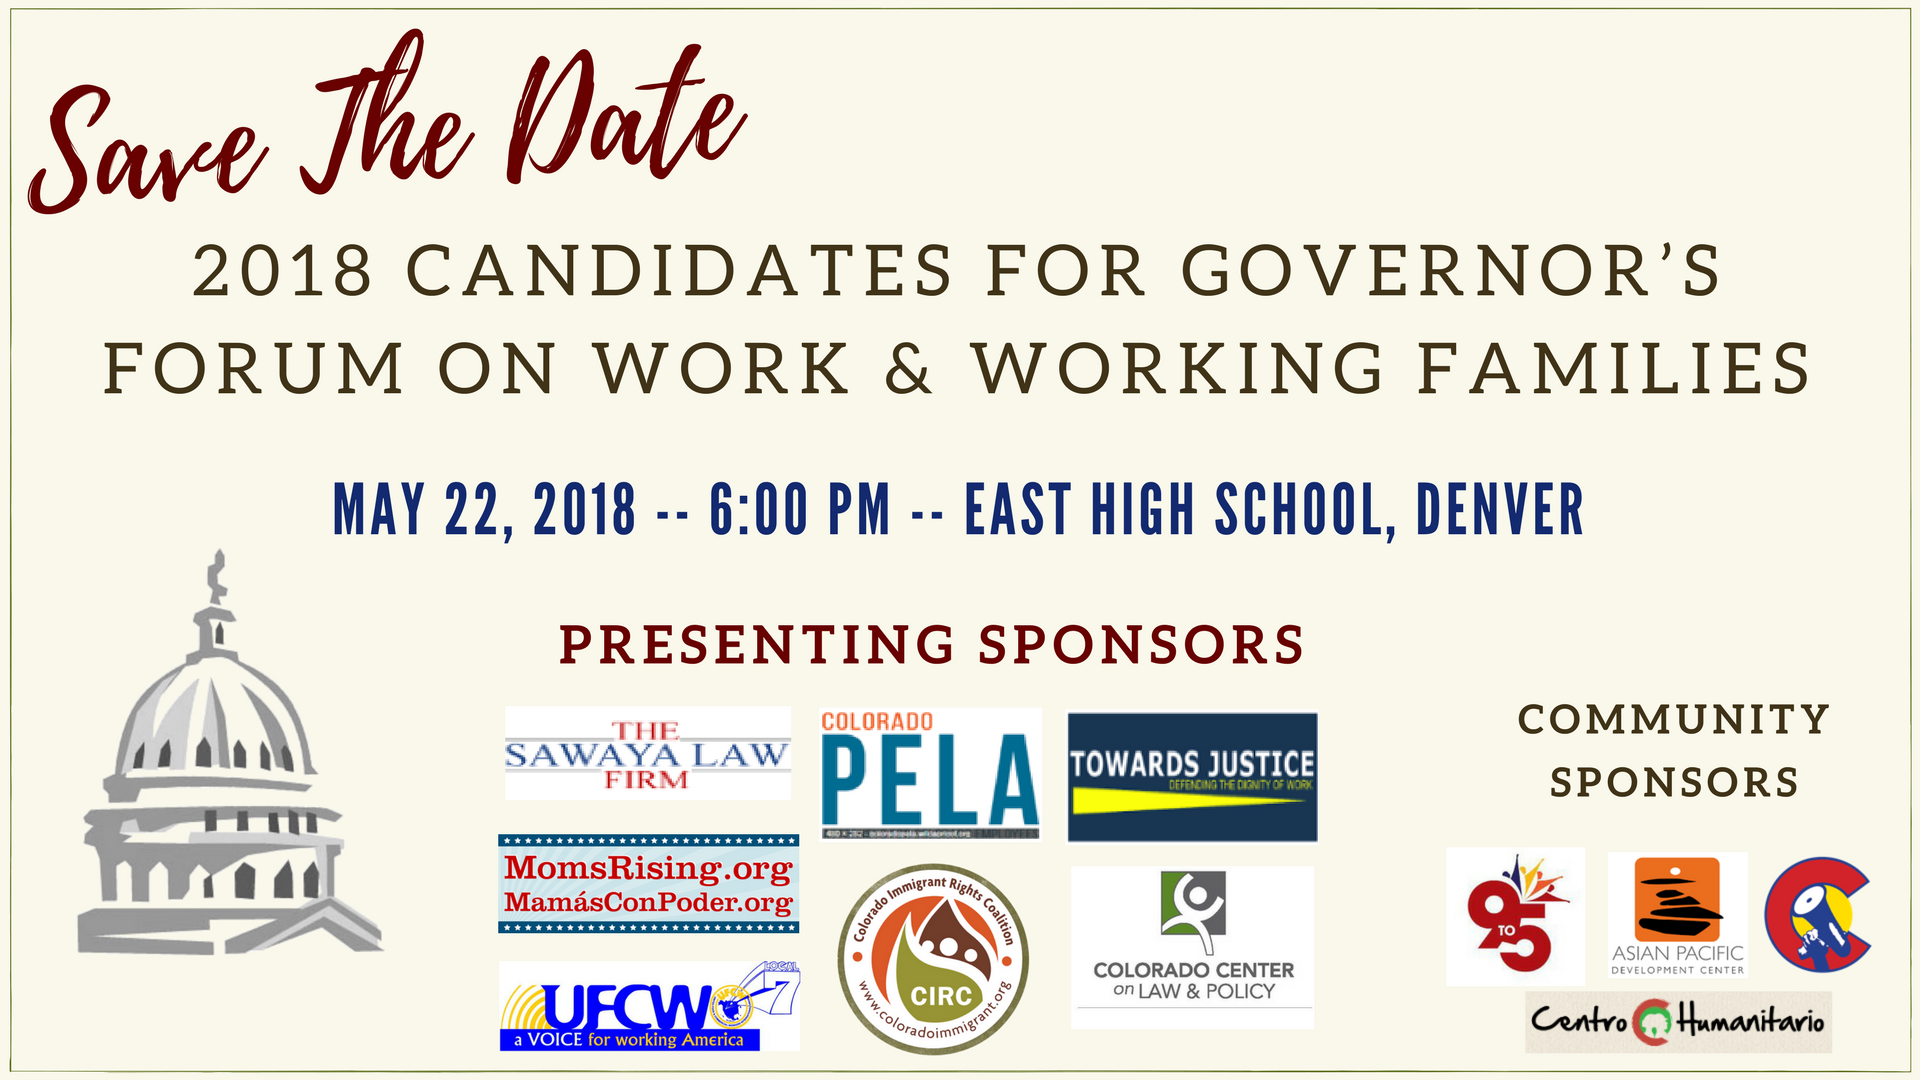 2018_Candidates_for_Governor's_Forum_on_Work___Working_Families.png